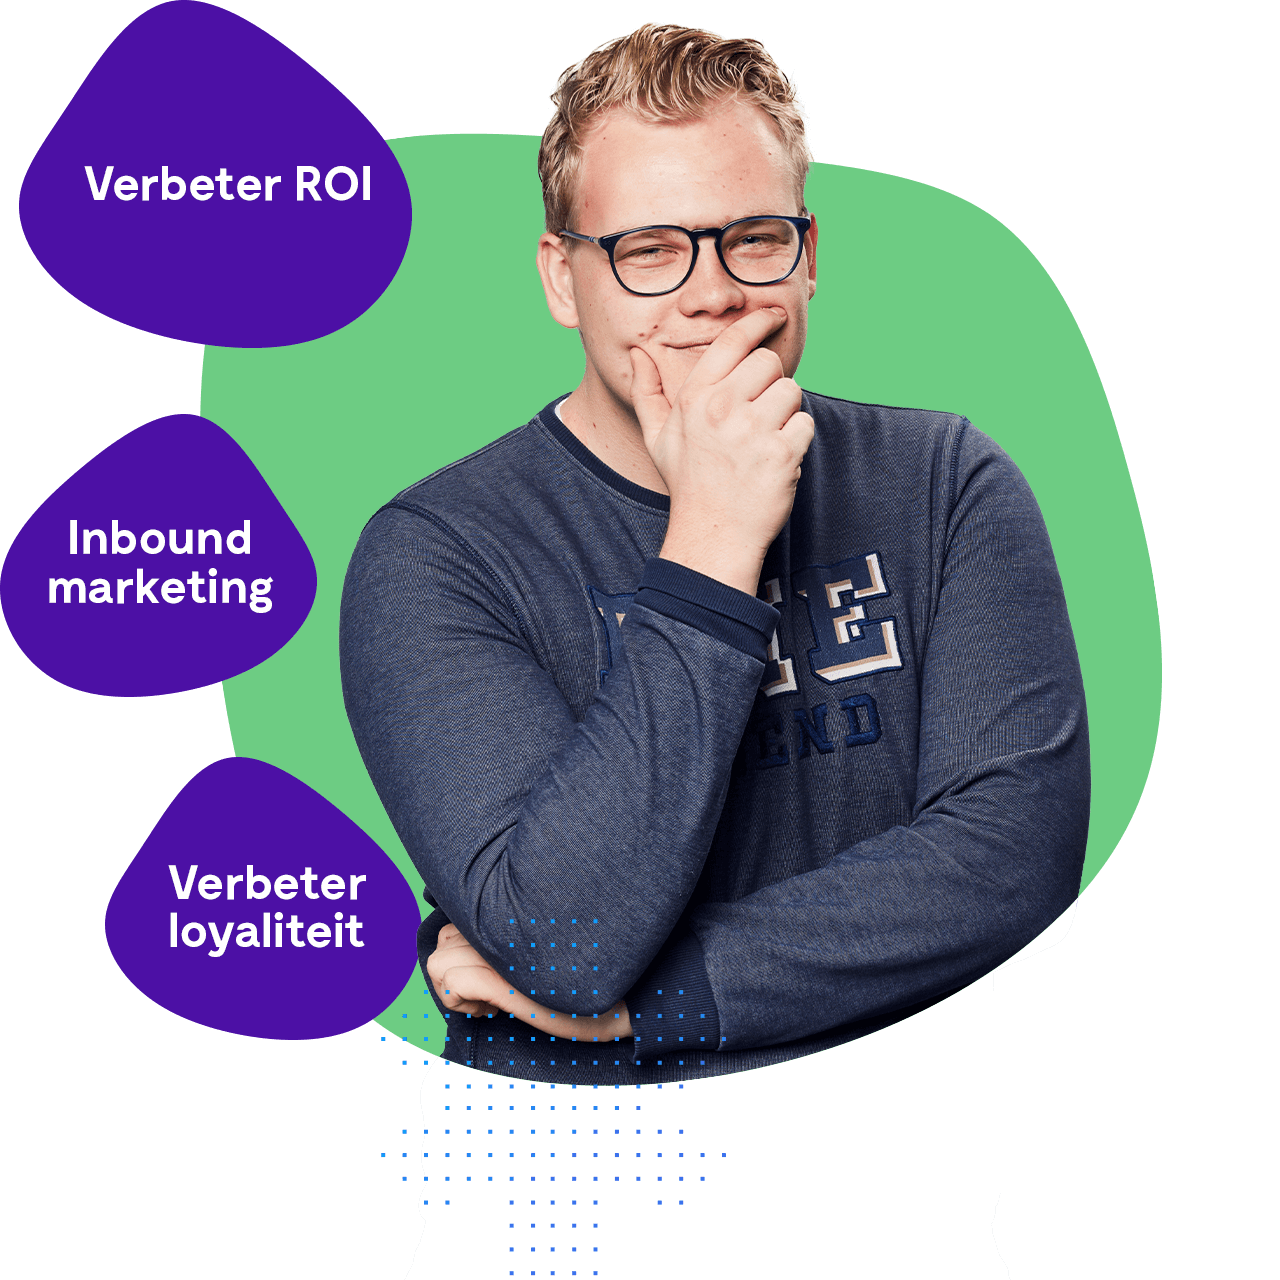 inbound marketing-roi-loyaliteit